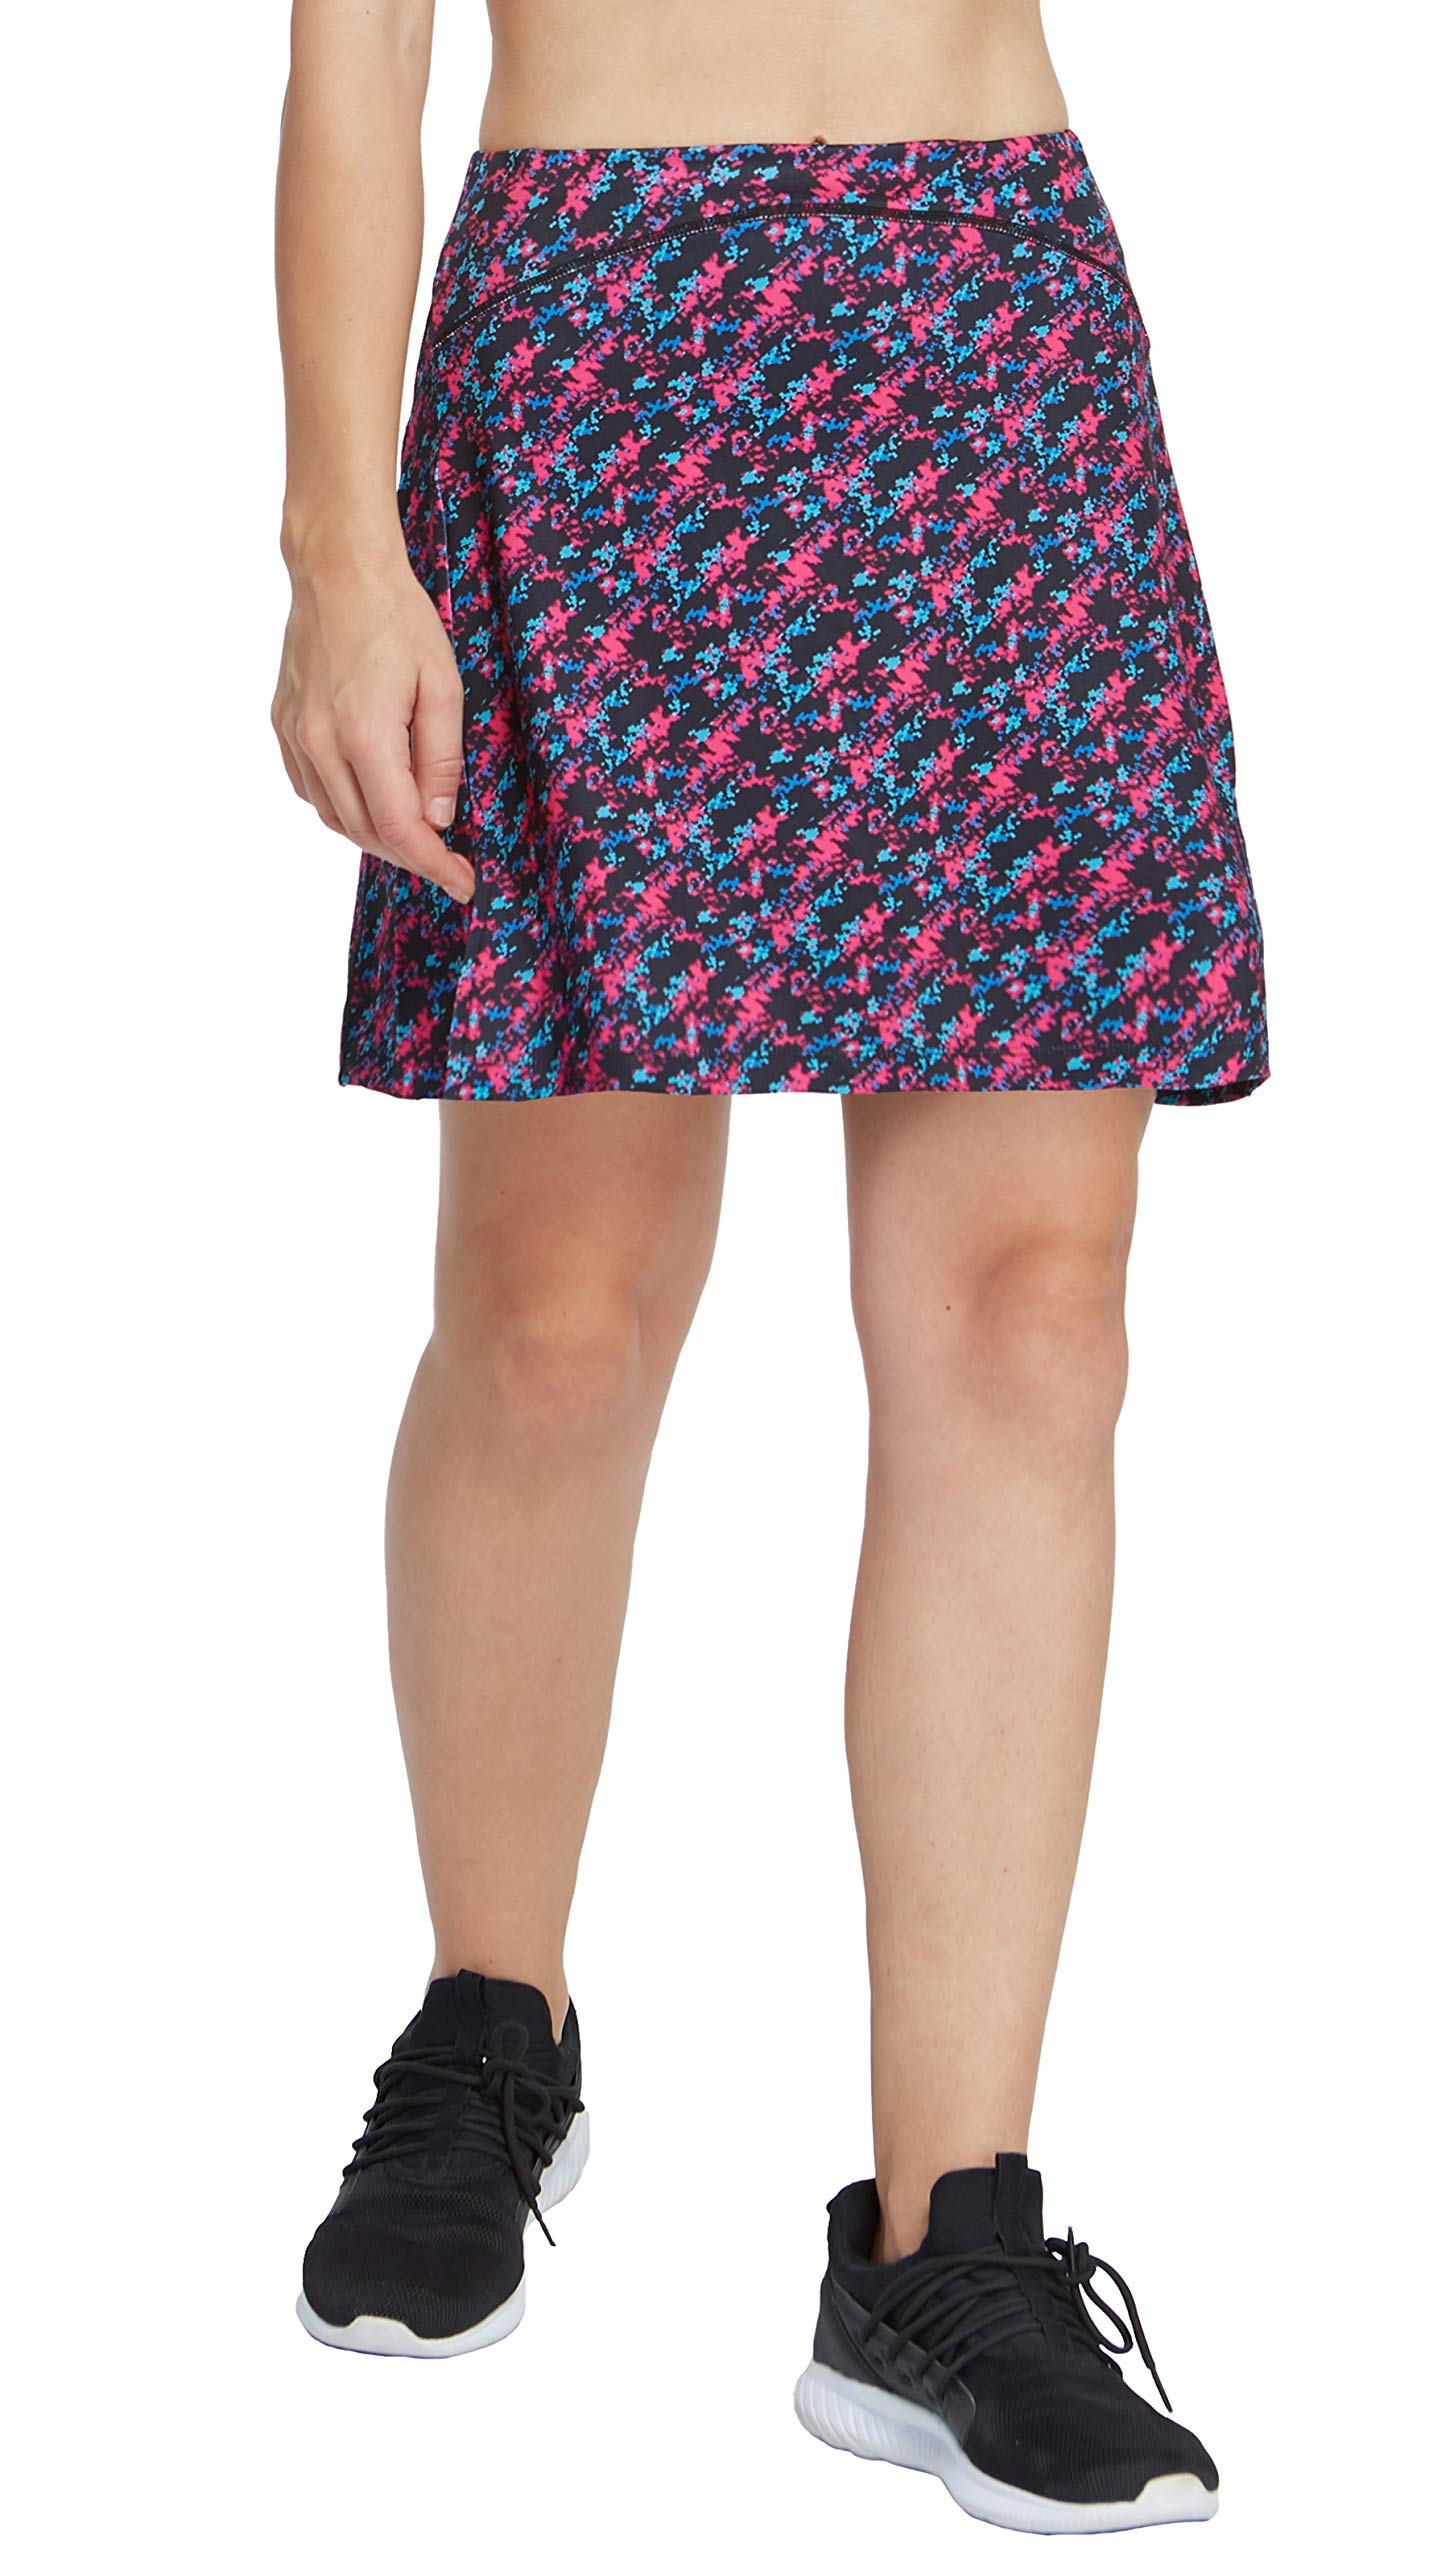 slimour Women Print Golf Skirt Travel Skirts with Pockets Swim Skirt High Waist with Shorts Mixed M by slimour